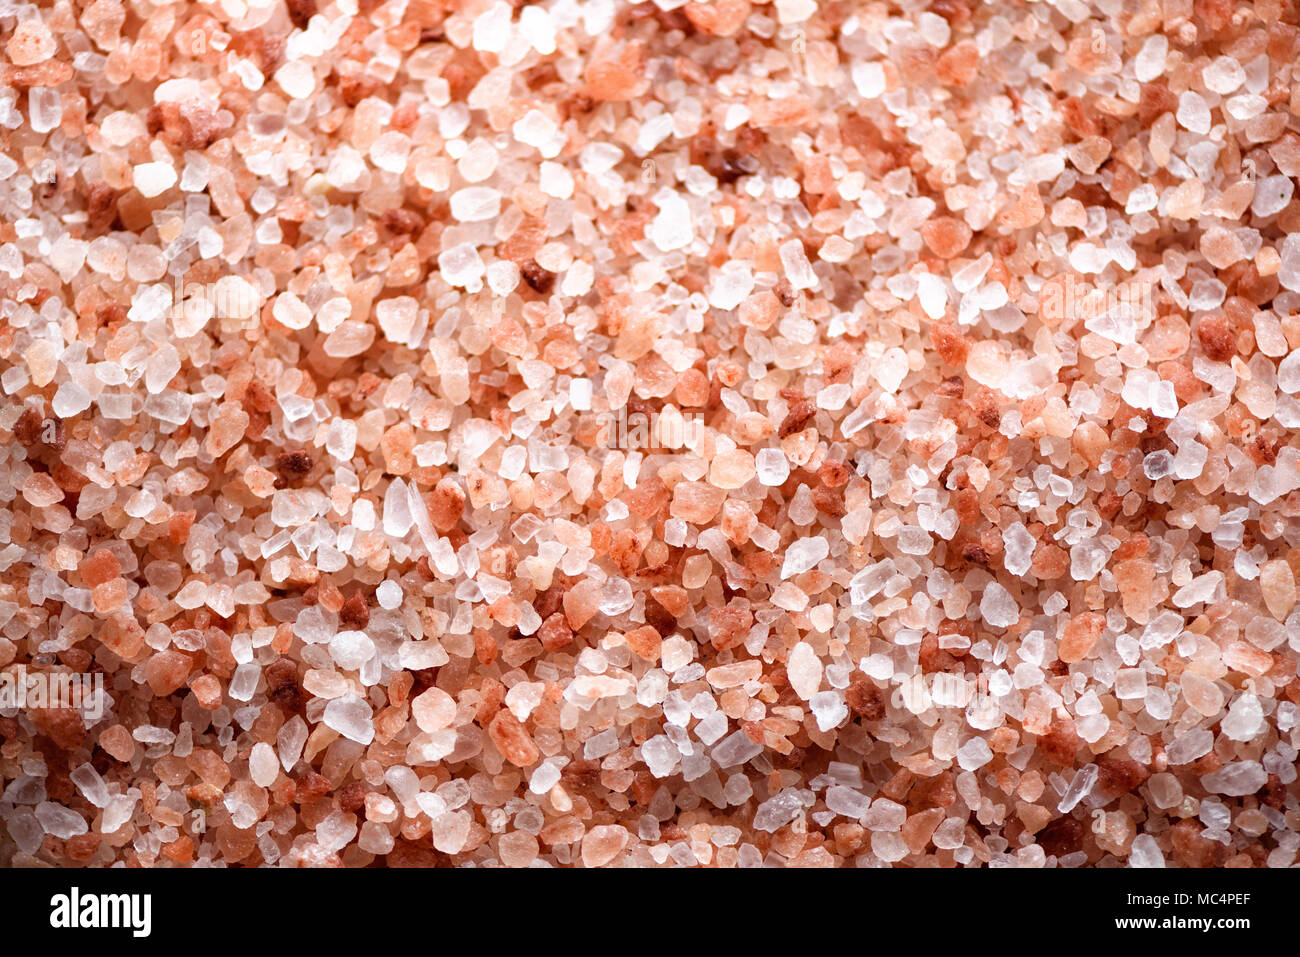 Pink himalayan salt background. Ingredients for cooking. Banner - Stock Image